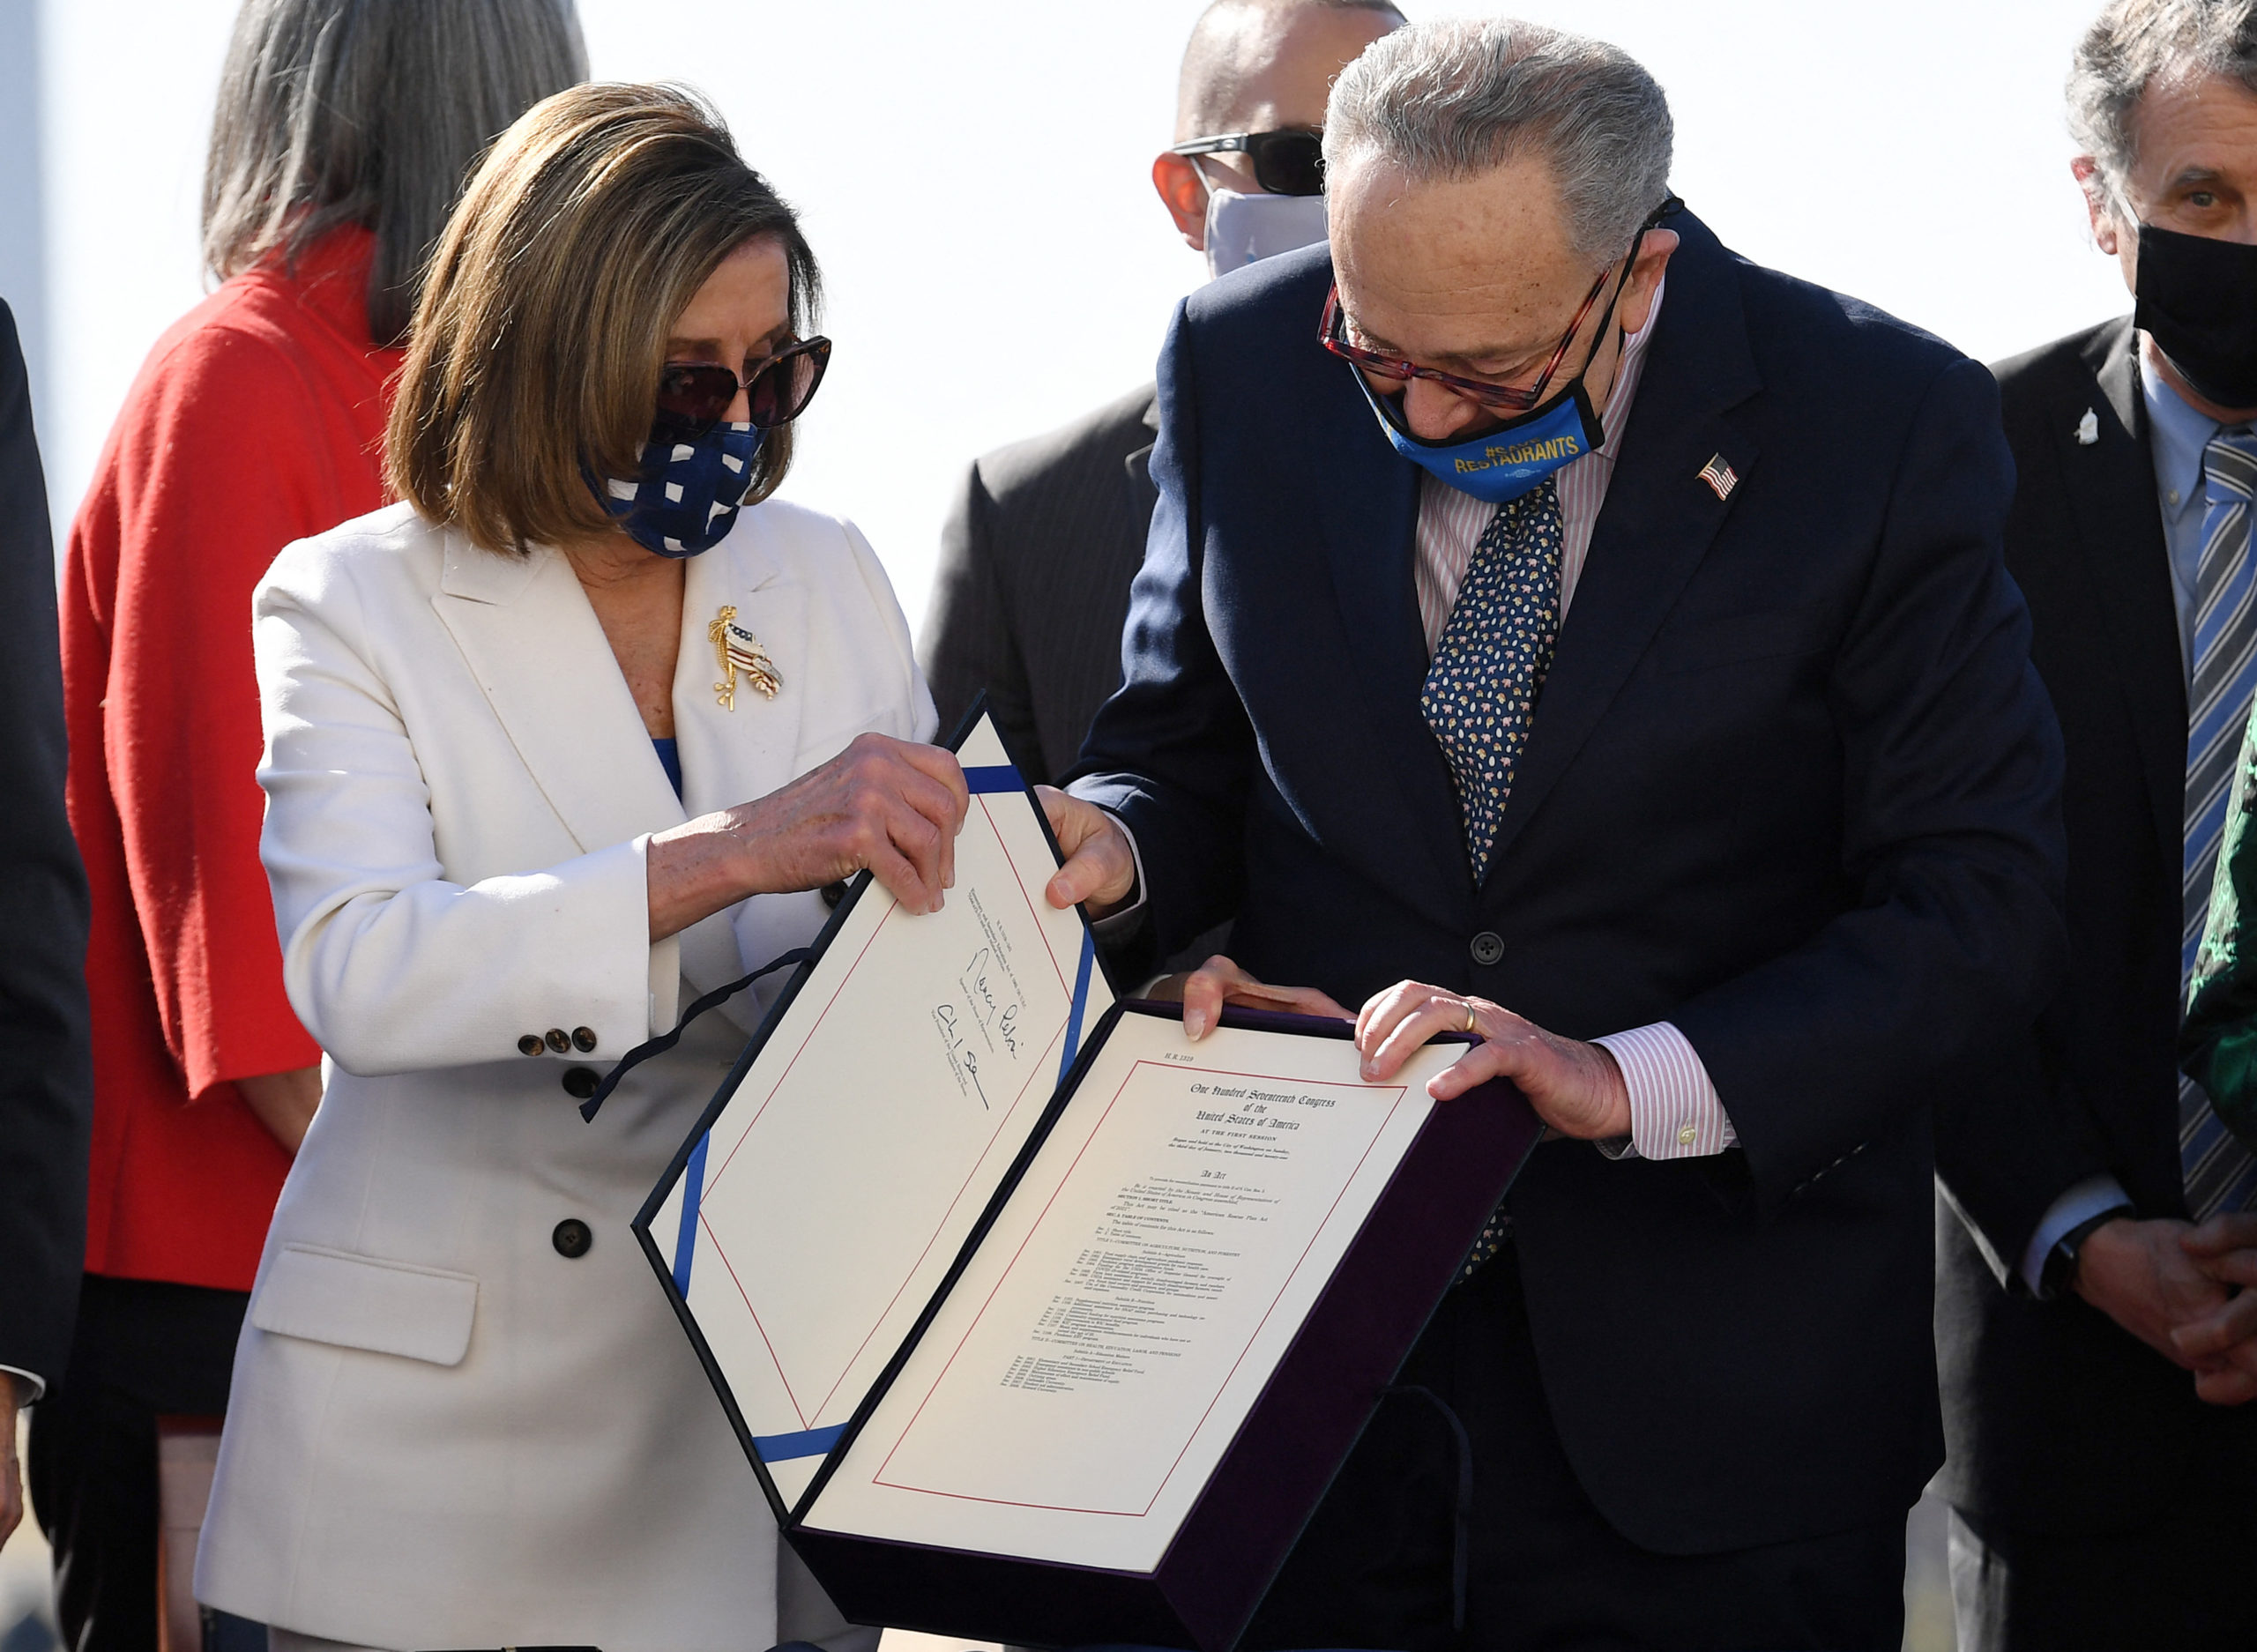 Speaker of the House Nancy Pelosi and Senate Majority Leader Chuck Schumer hold the signed American Rescue Plan Act on March 10. (Olivier Douliery/AFP via Getty Images)